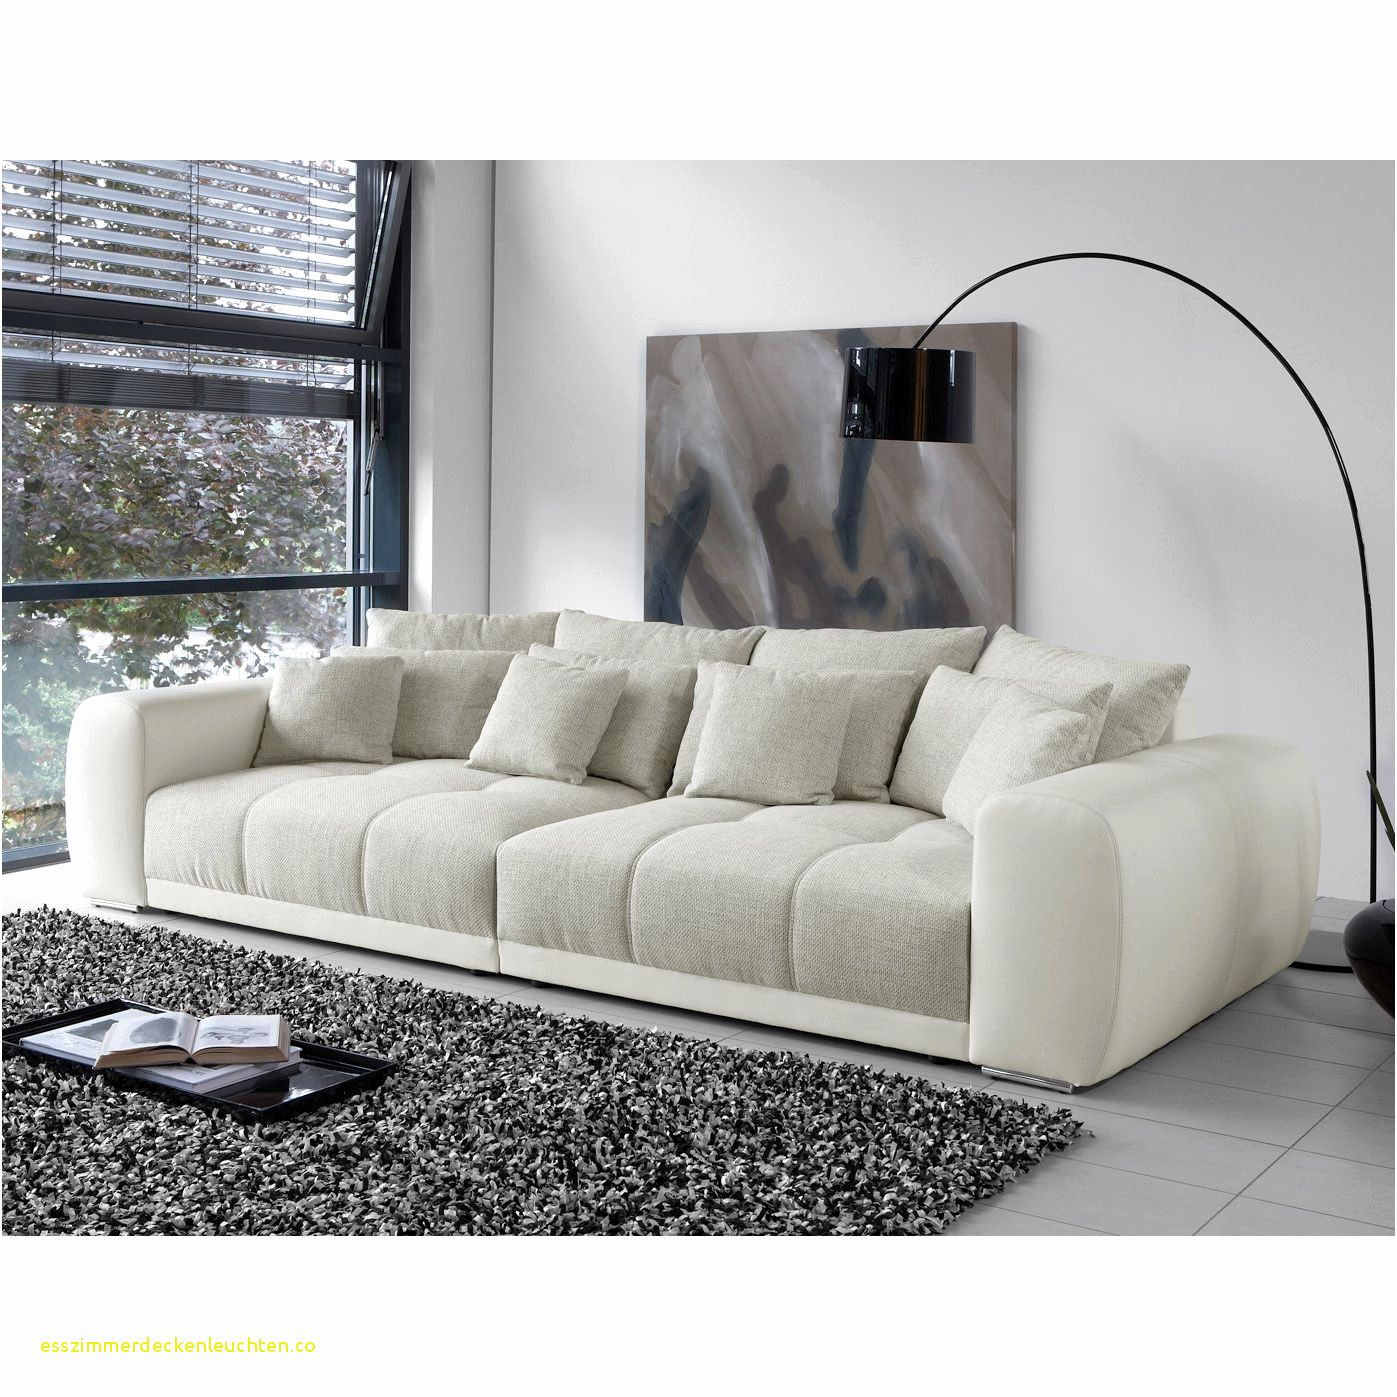 Ausgezeichnet Big Sofa Ikea Beige Sofa Living Room Living Room Sofa Set Blue Sofas Living Room